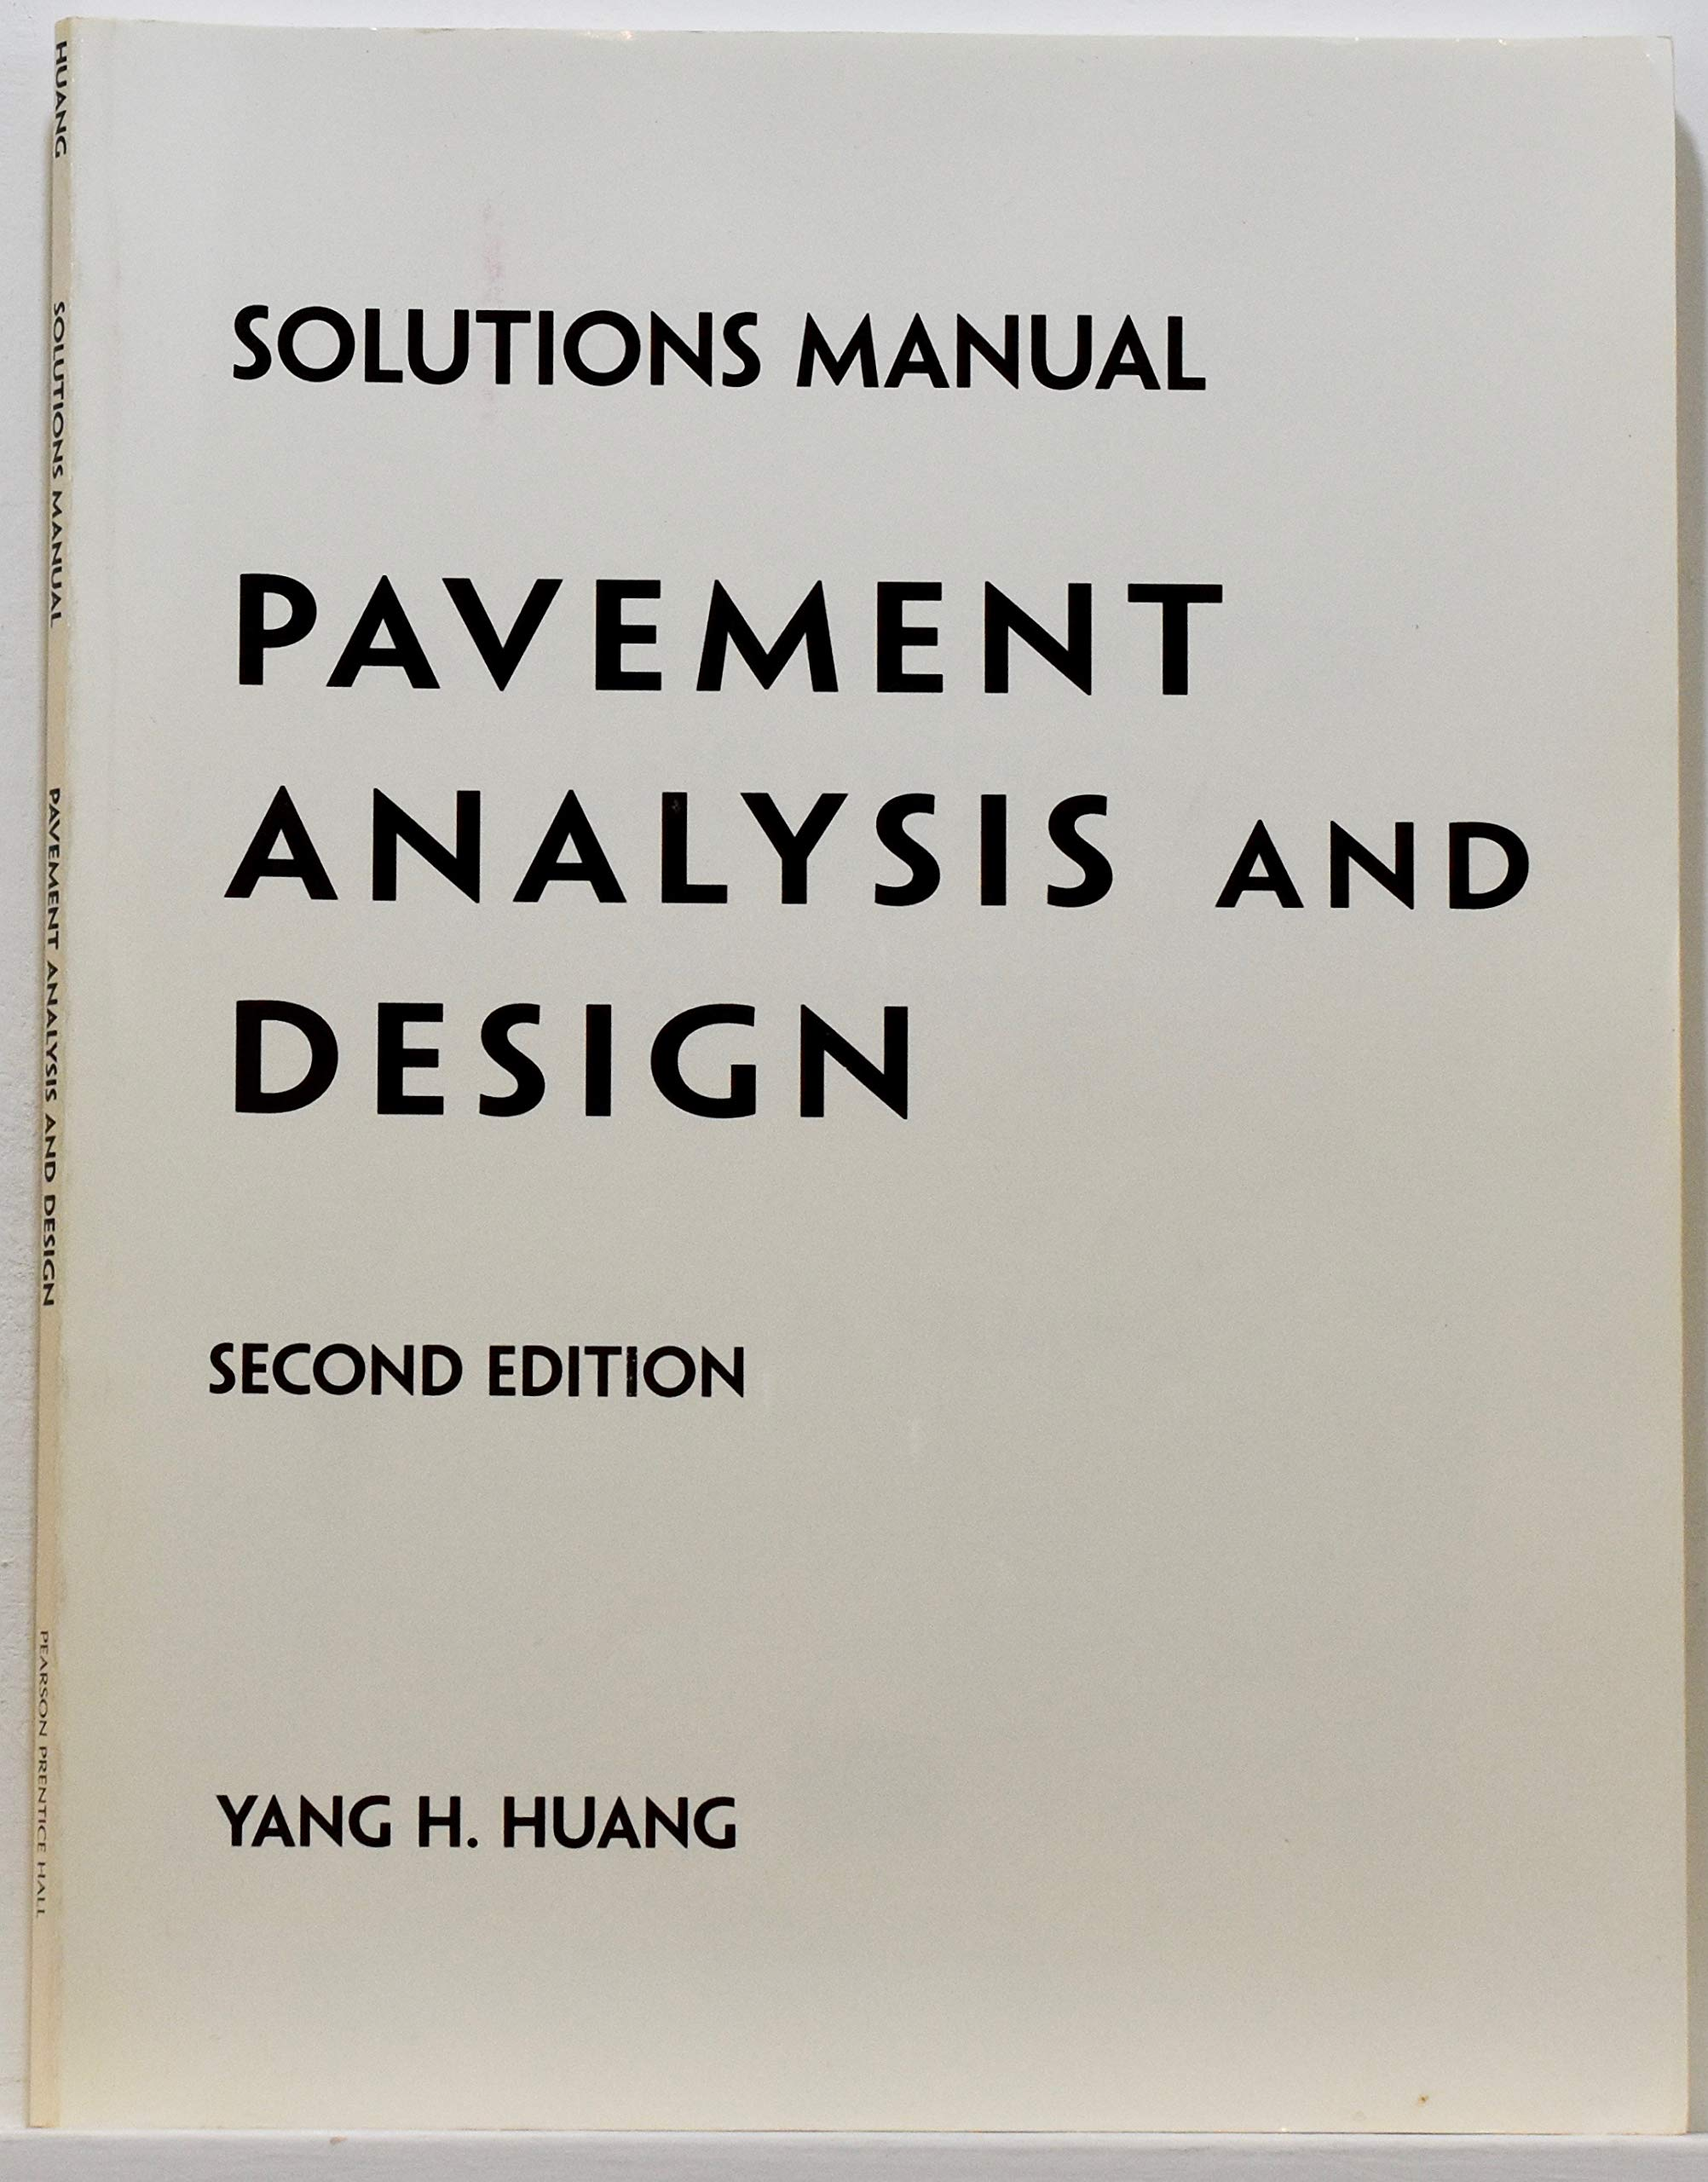 Student Solutions Manual Pavement Analysis And Design 2nd Edition Yang H Huang 9780131842441 Amazon Com Books